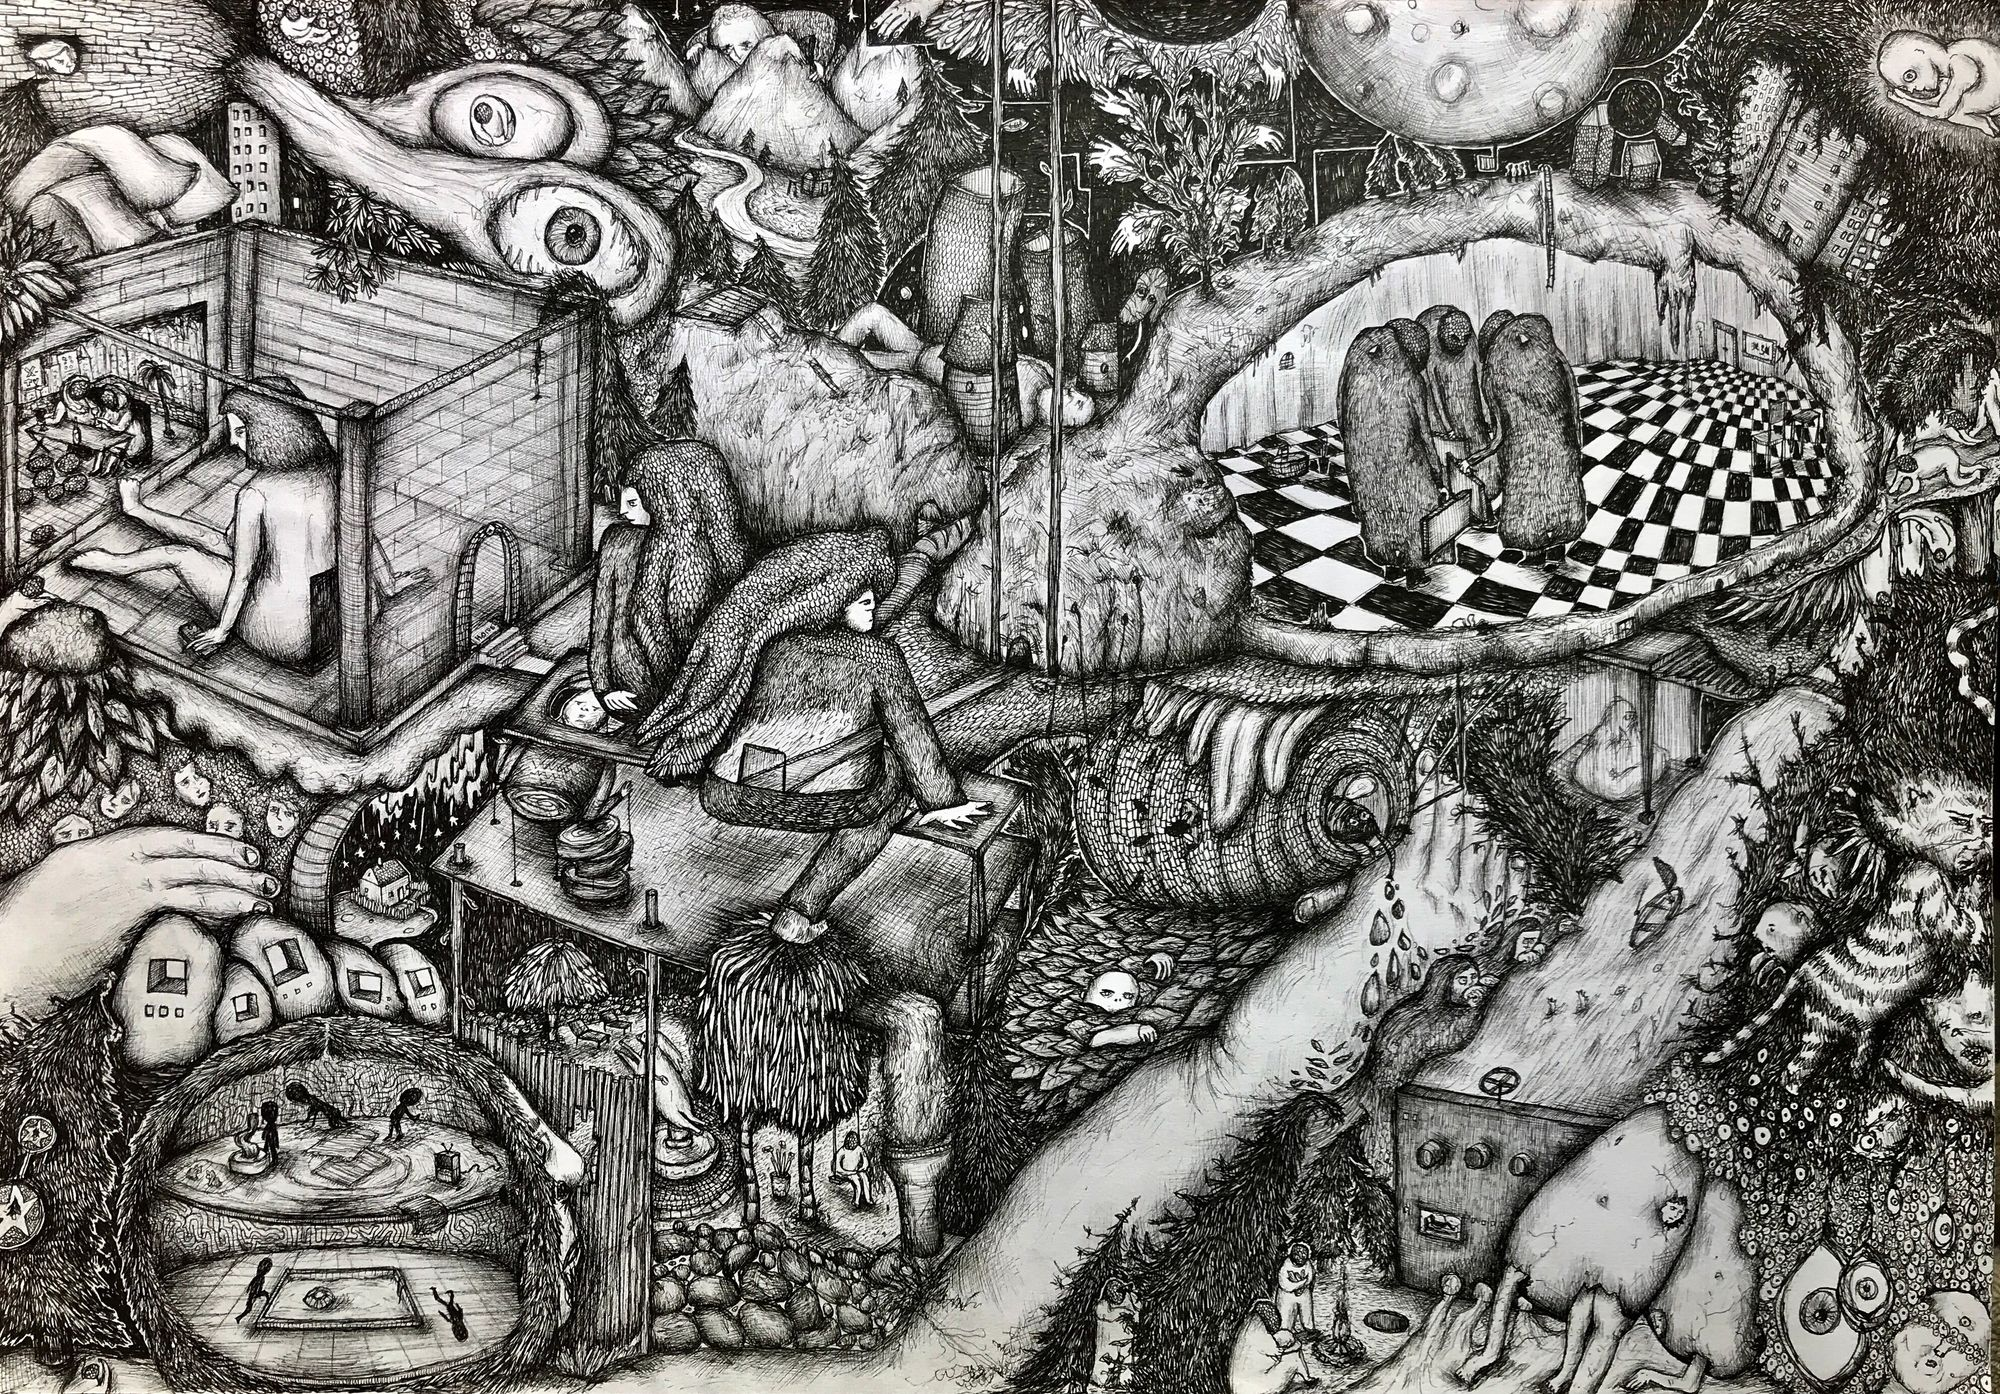 A complex escher-esque pen drawing in black and white of underground characters in strange and grotesque places.